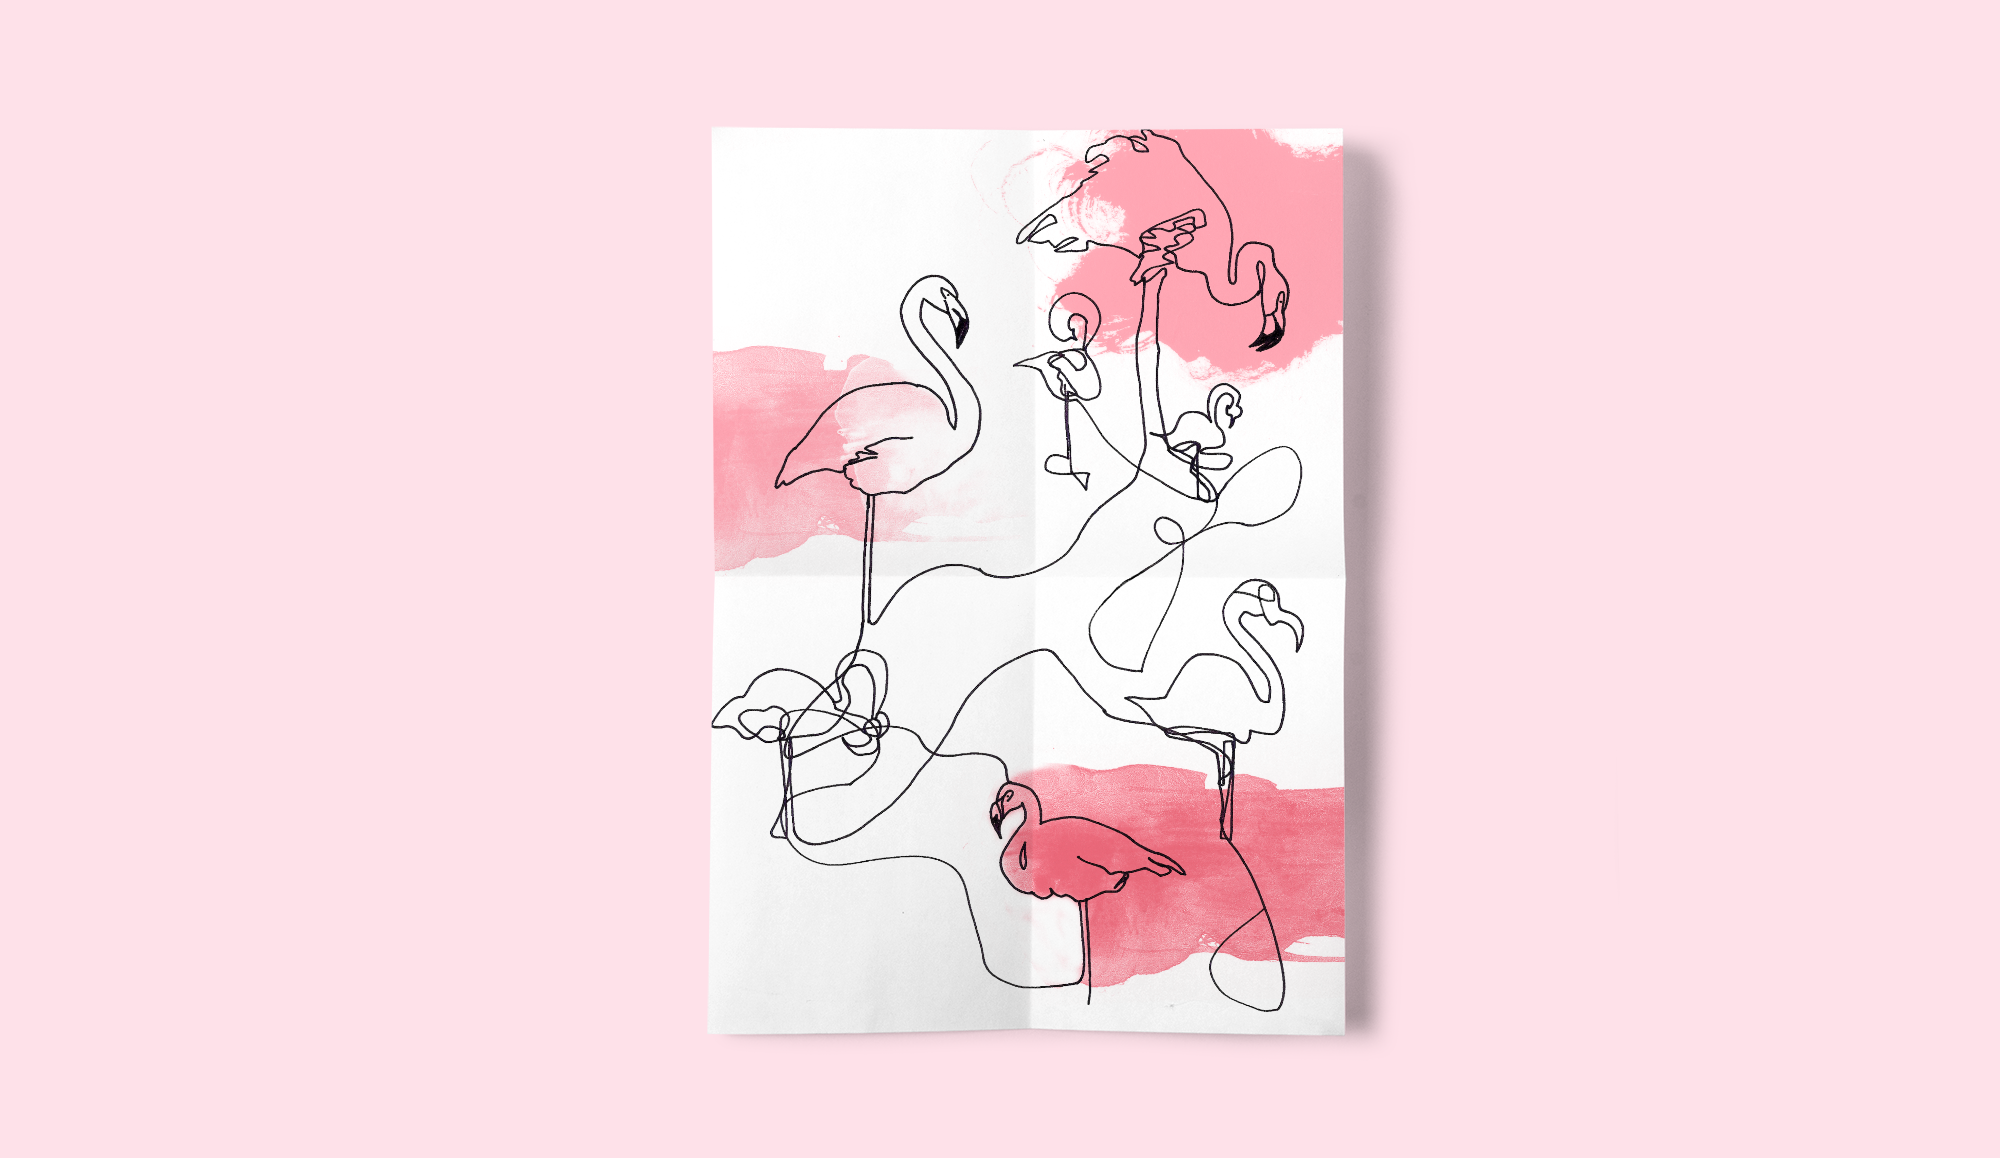 Flamingo-Full-Illustration-ElmiDesign